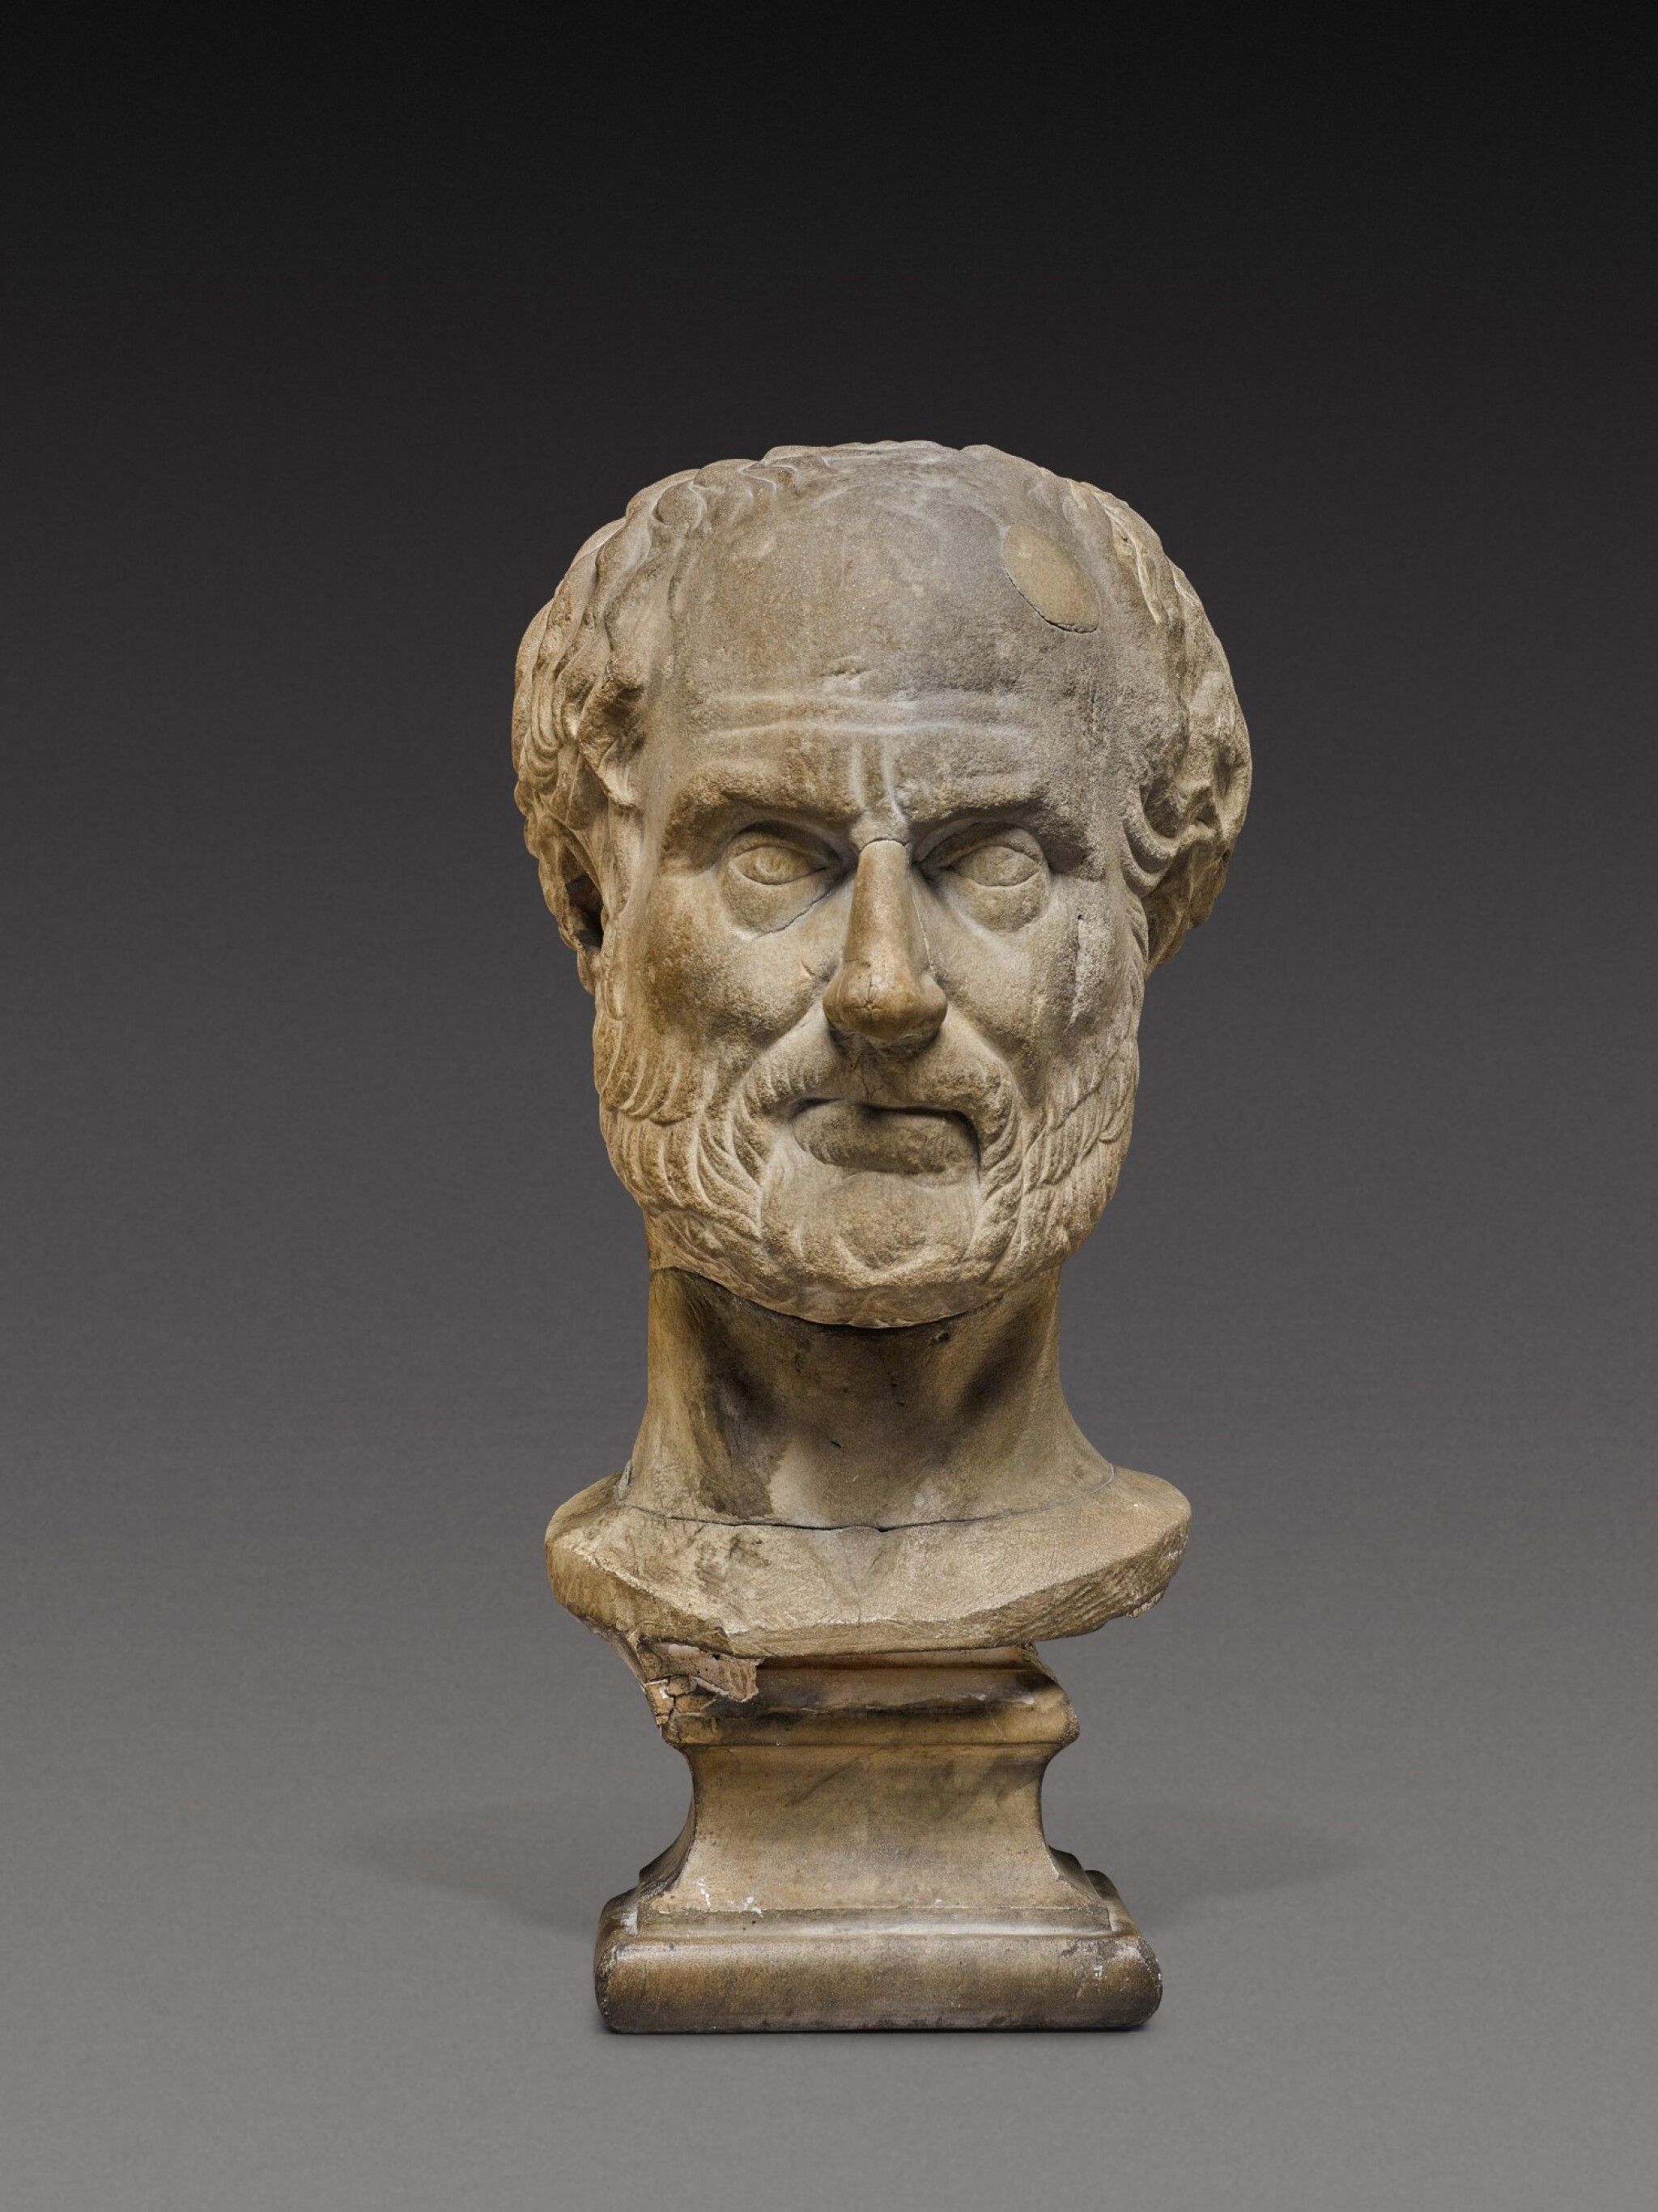 View 1 of Lot 85. A Roman Marble Portrait Head of a Man, probably Thucydides, 2nd Century A.D..